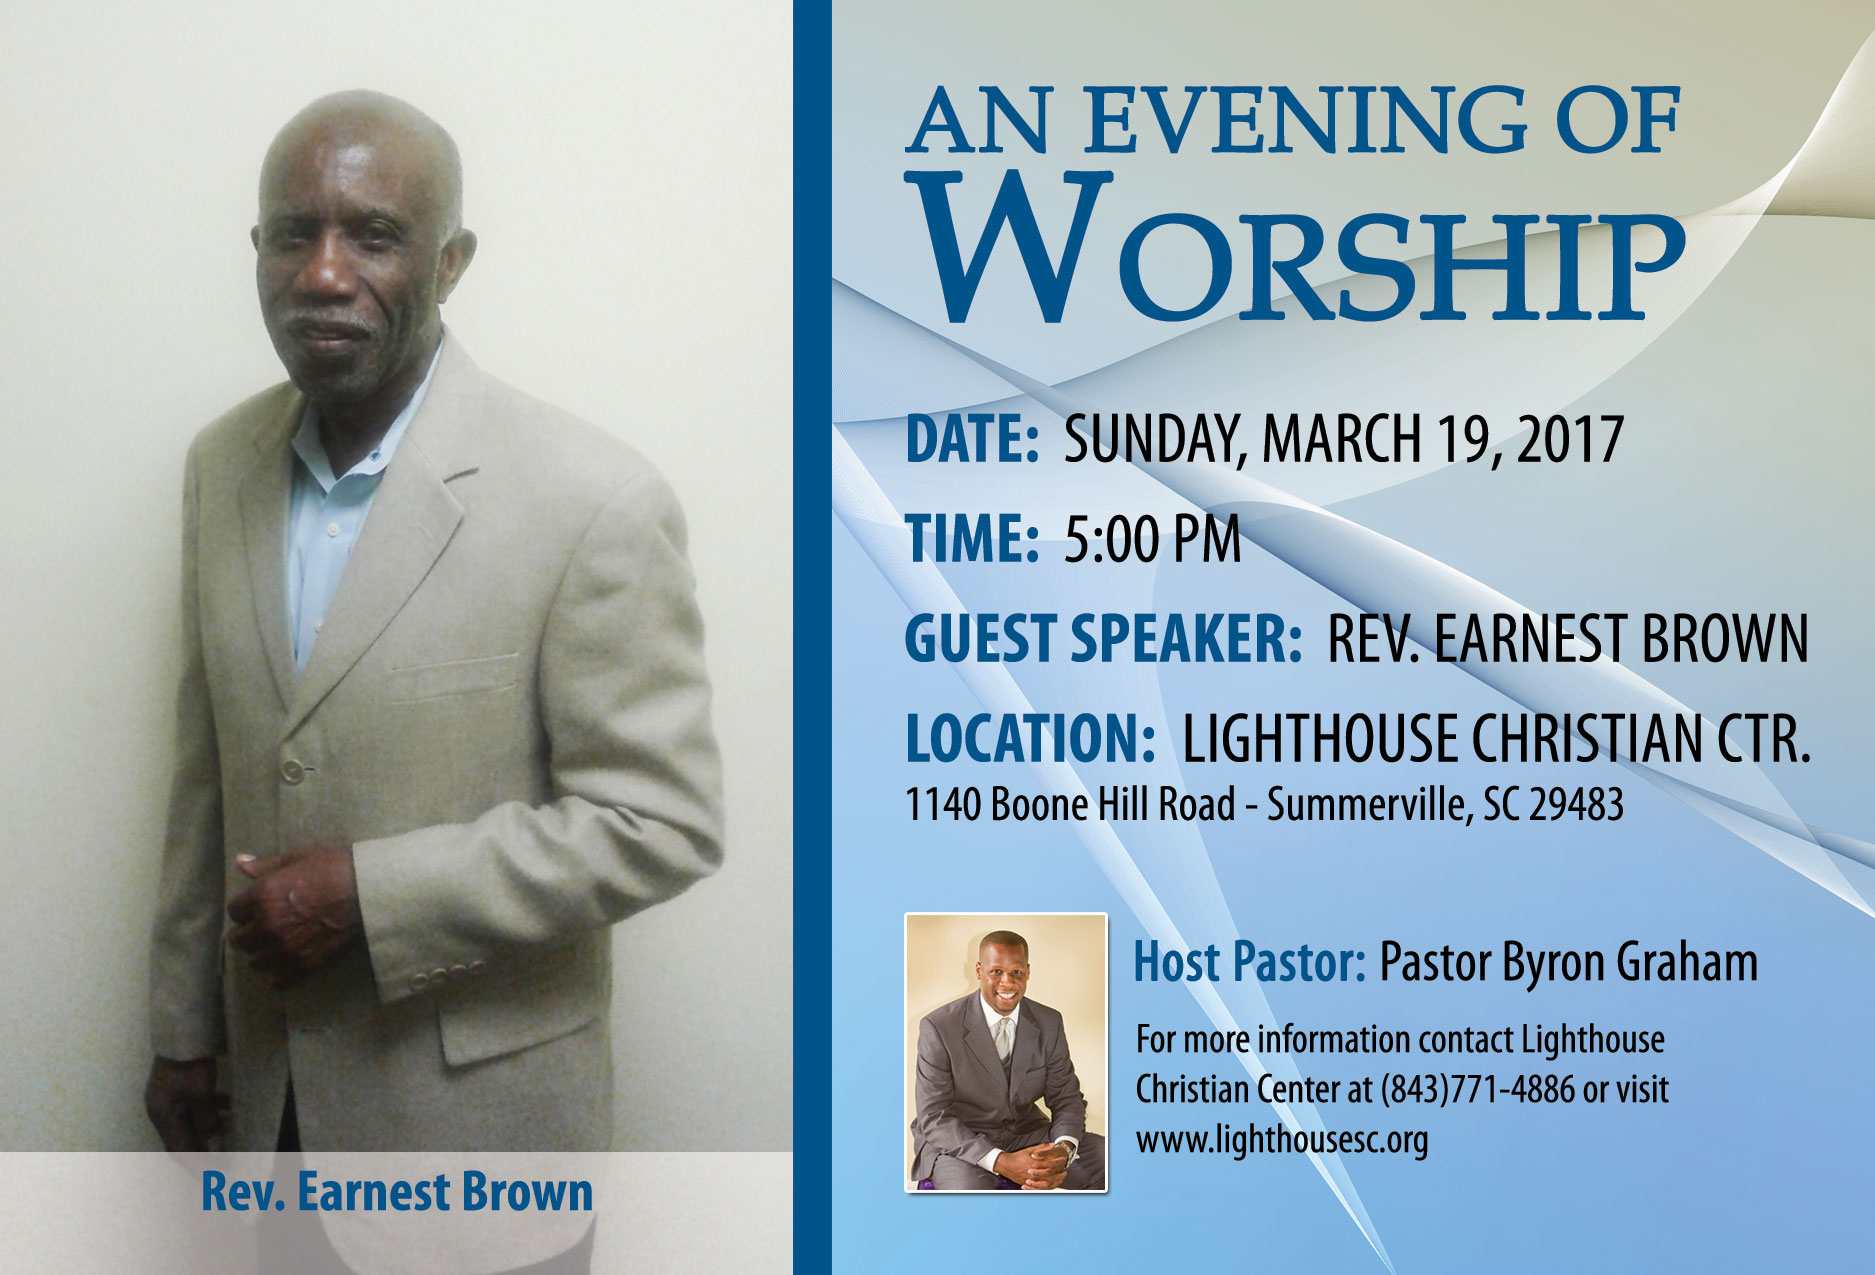 An Evening of Worship